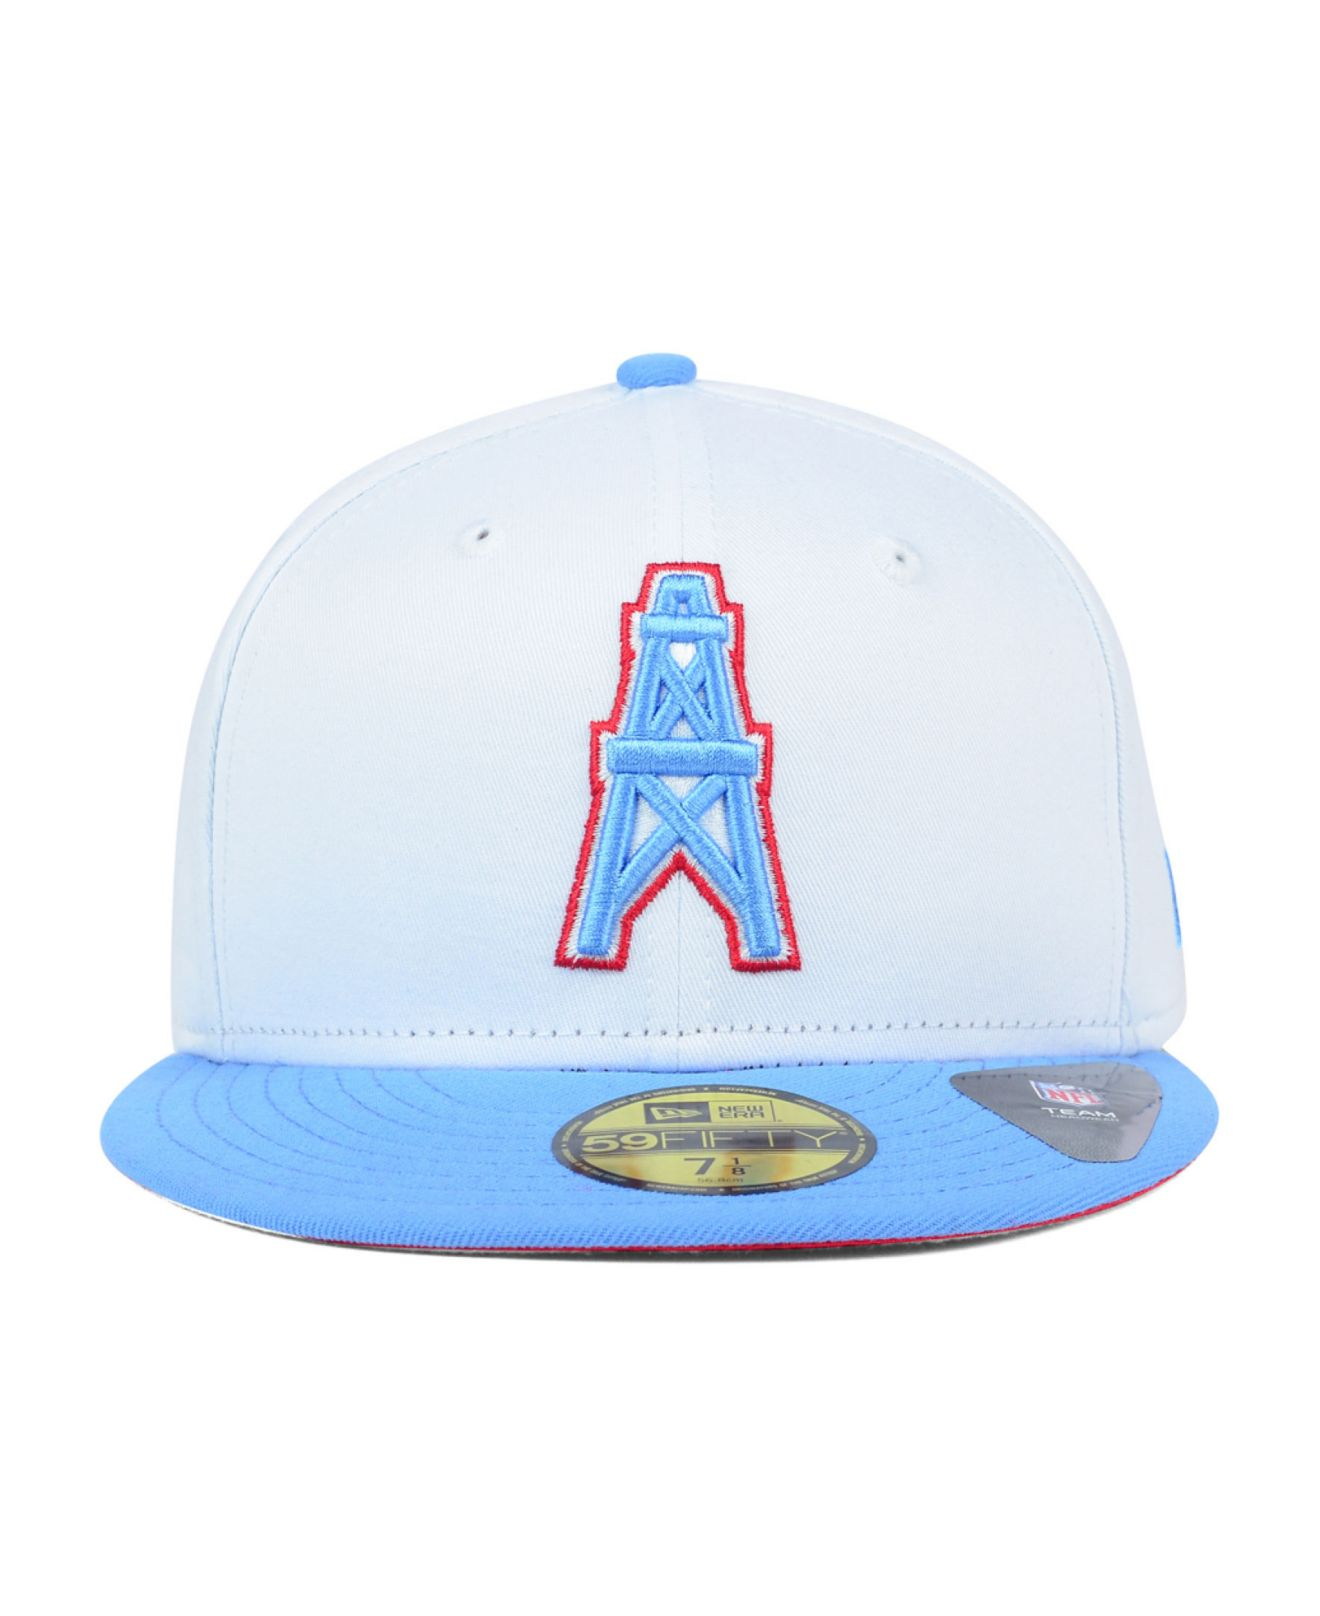 Lyst - KTZ Houston Oilers Nfl 2 Tone White Team 59fifty Cap in White ... 3a5711eee58